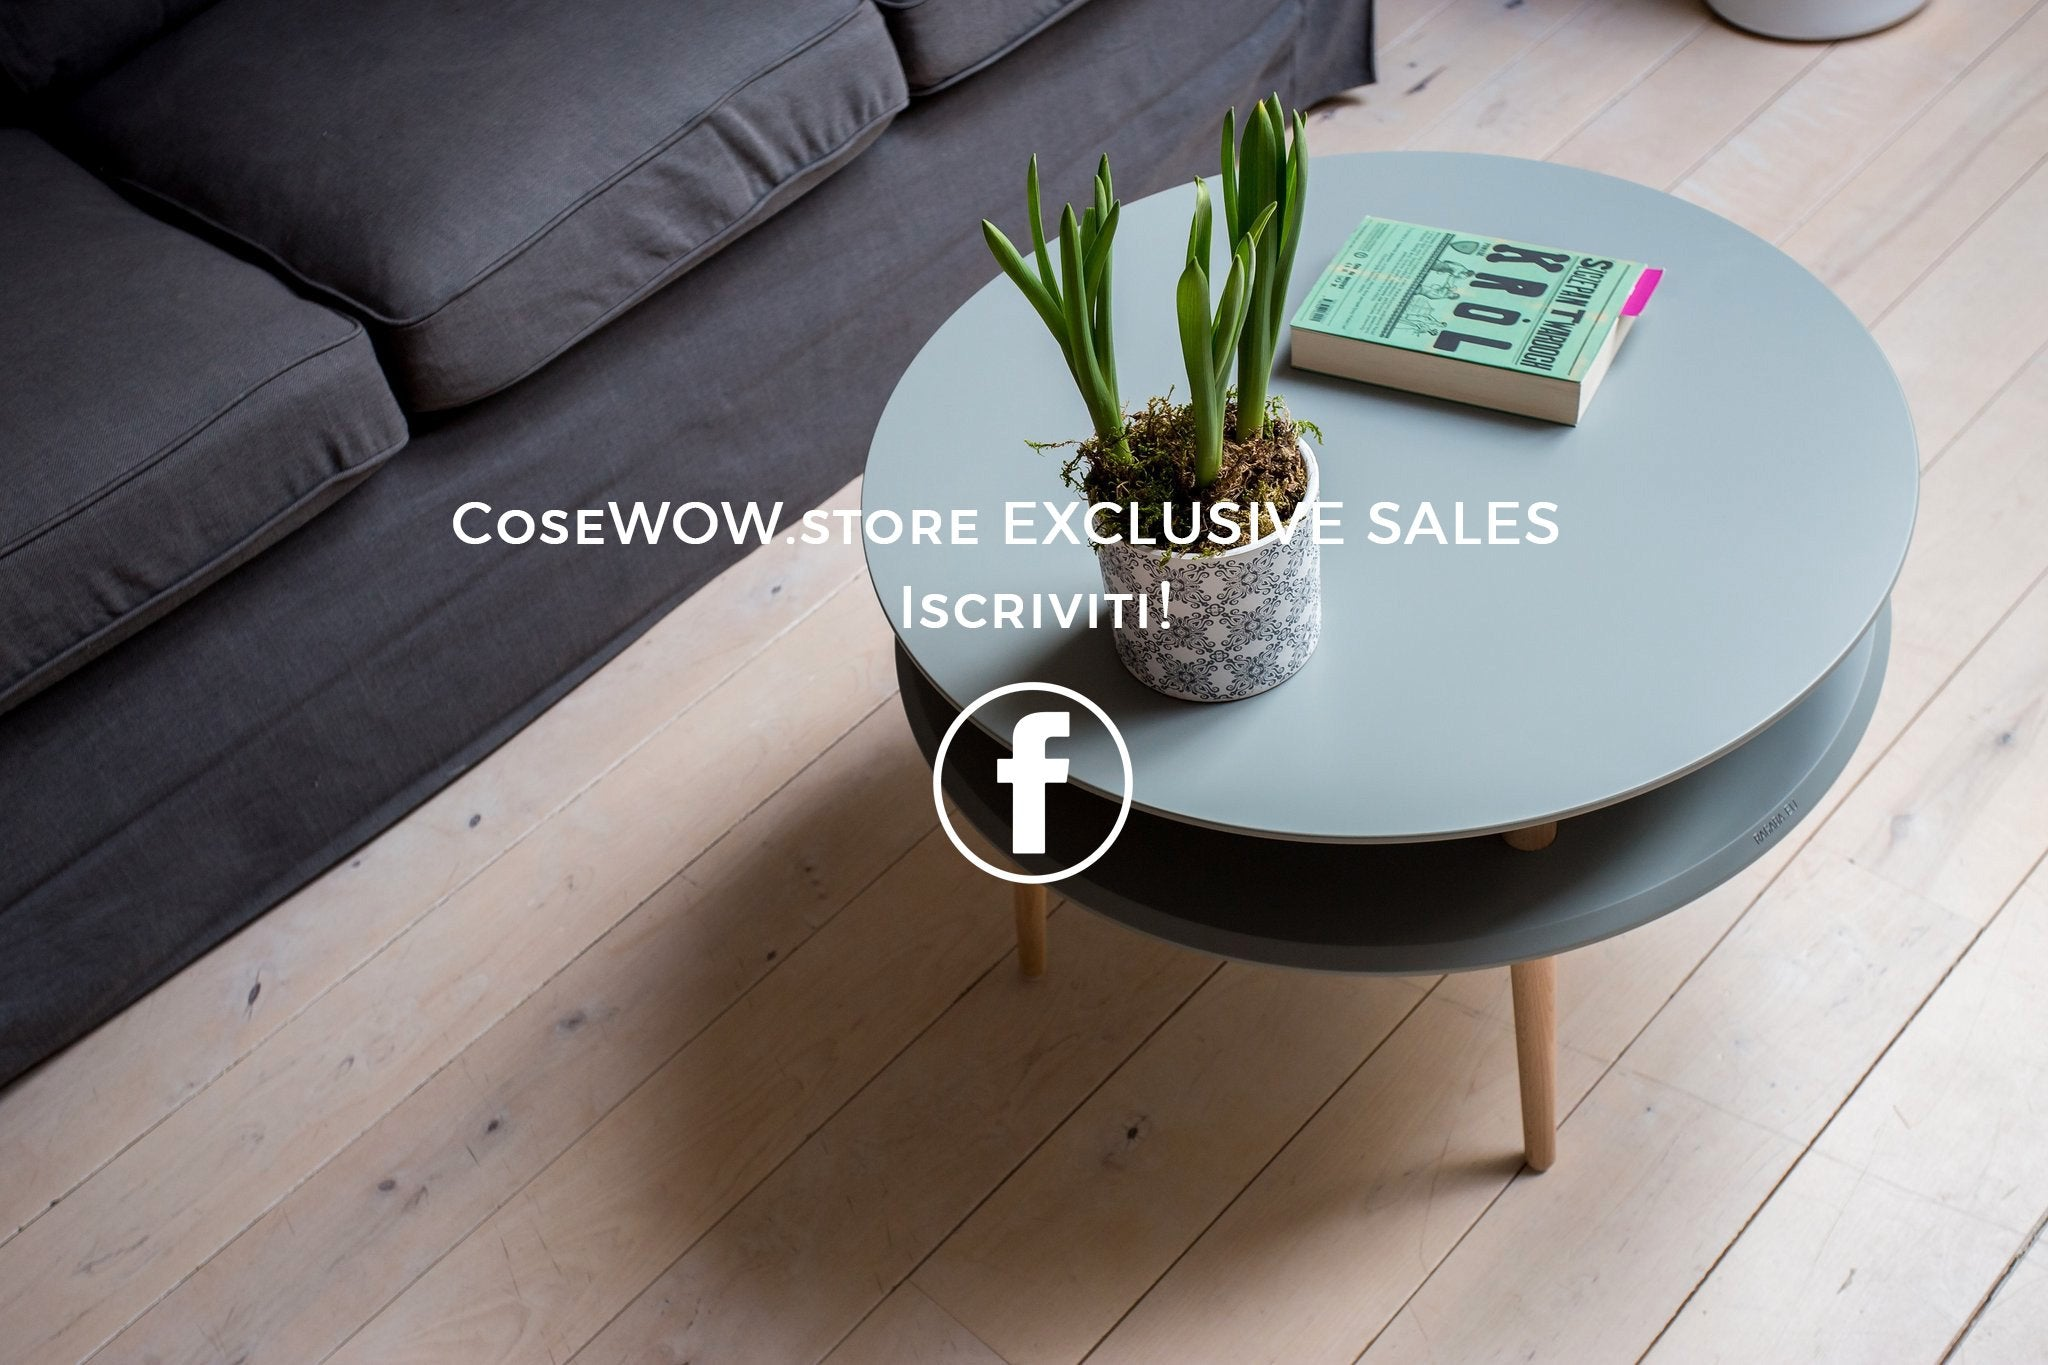 CoseWOW.store EXCLUSIVE STORE